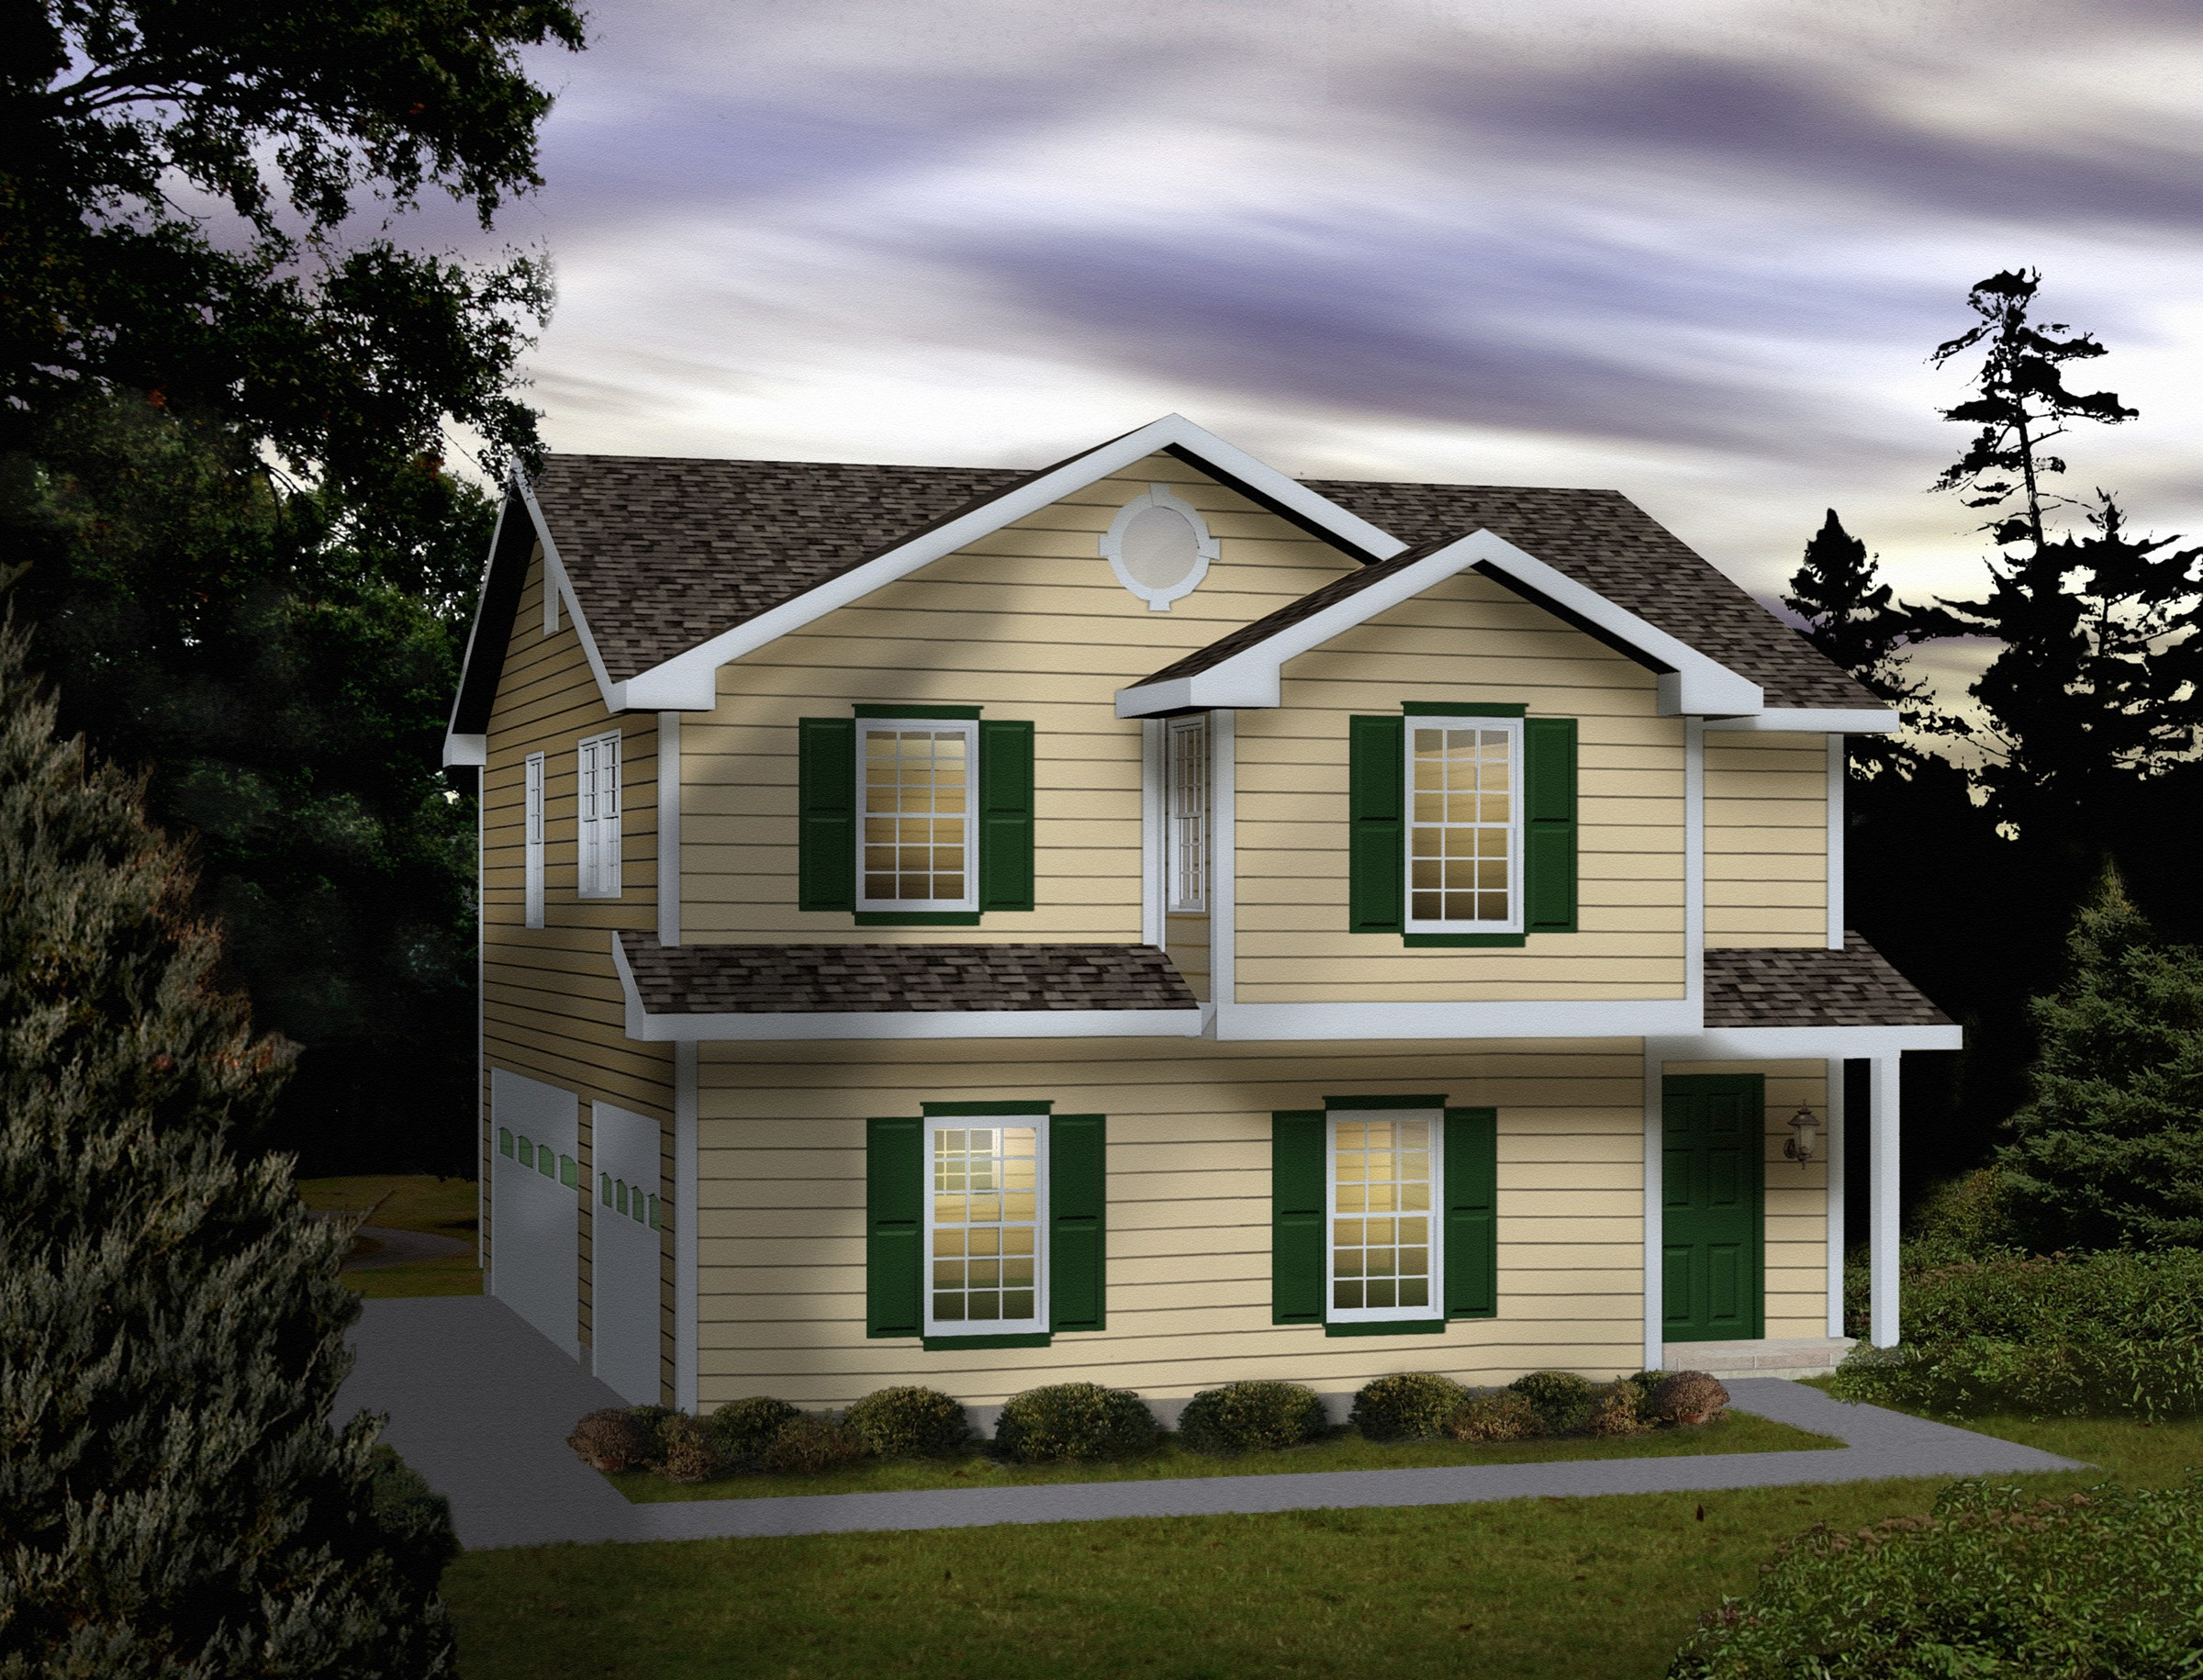 Side entry carriage house plan 2288sl 2nd floor master for 3 car garage with apartment